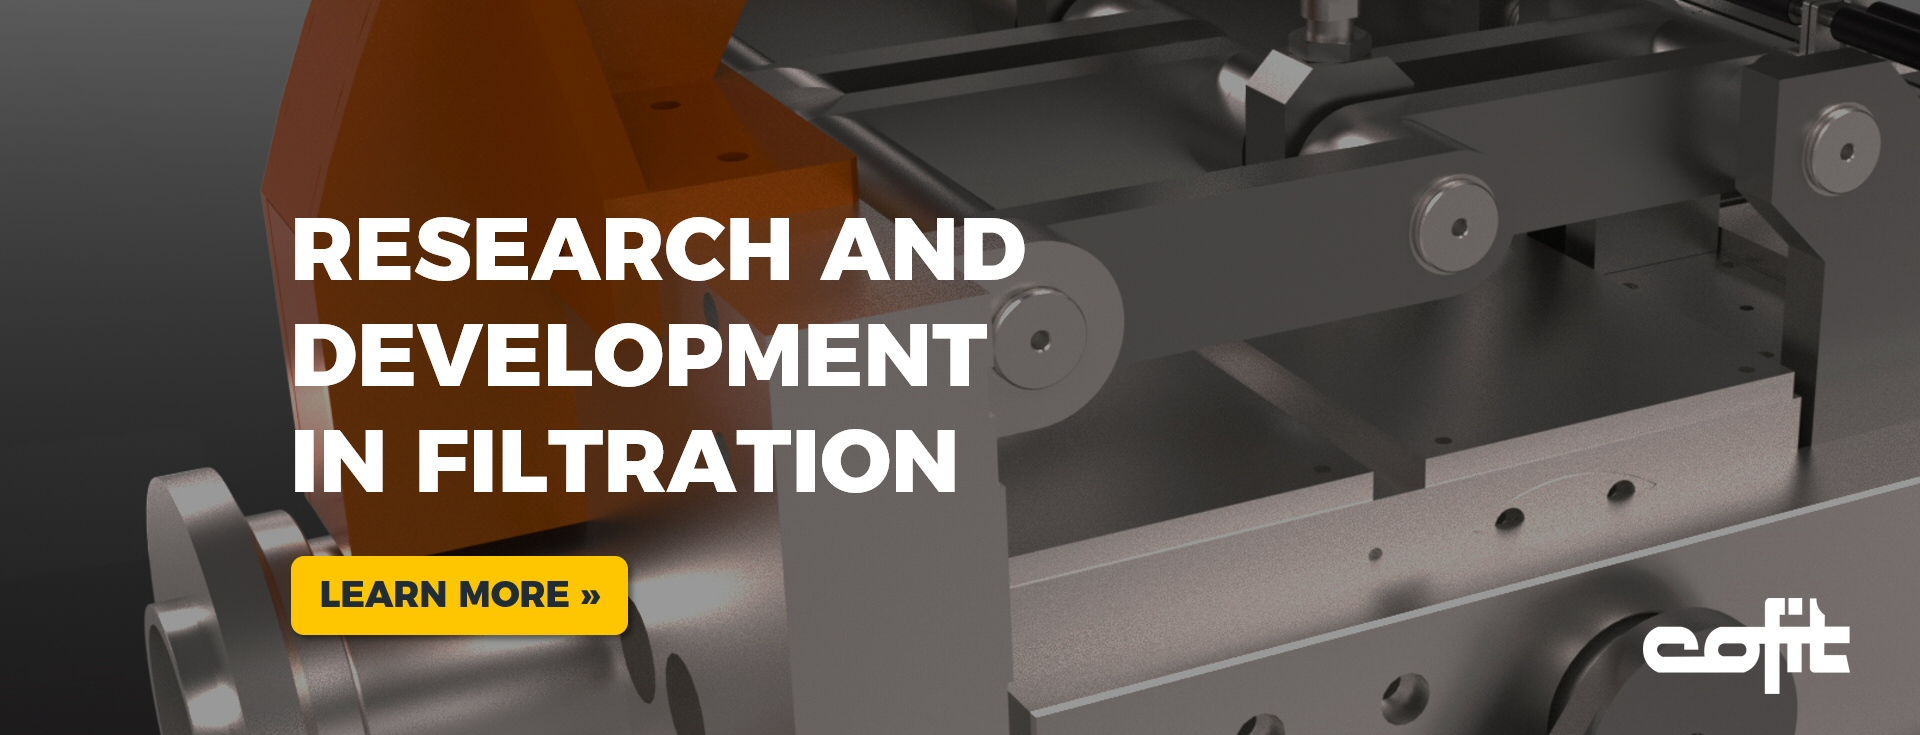 Research and development in filtration - Cofit